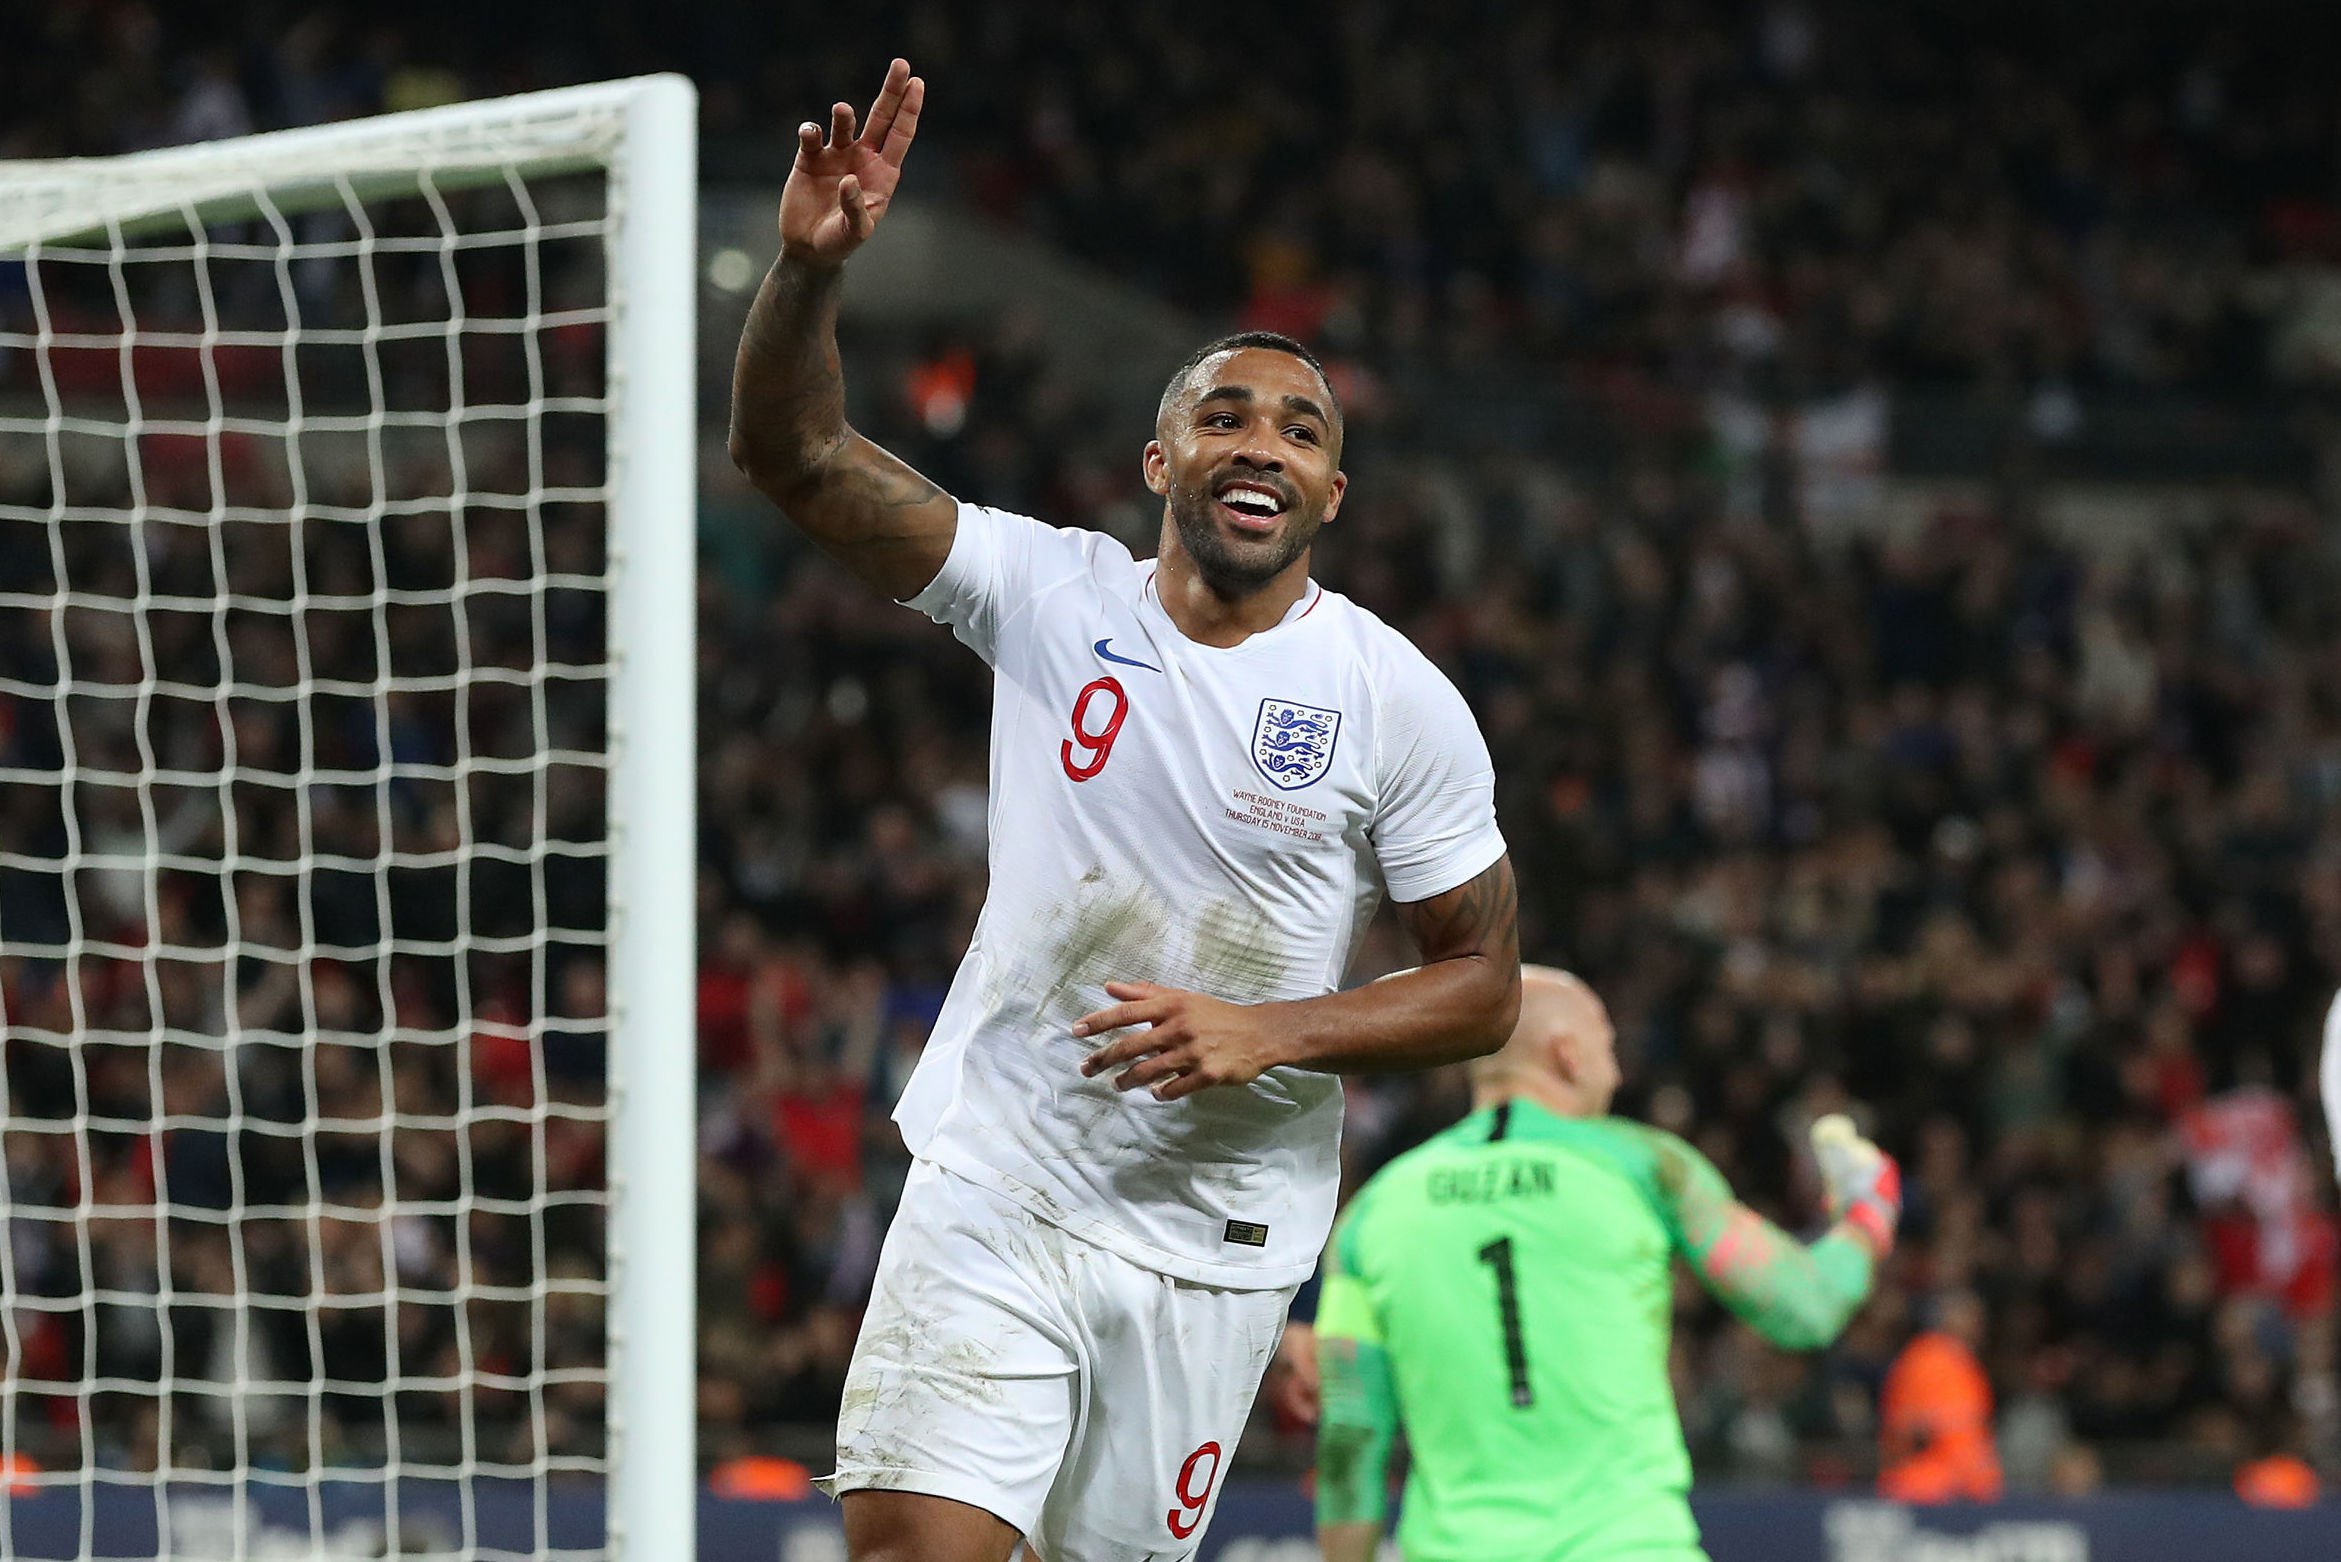 AFC Bournemouth's Callum Wilson says competition in the England squad gives him an 'extra boost'